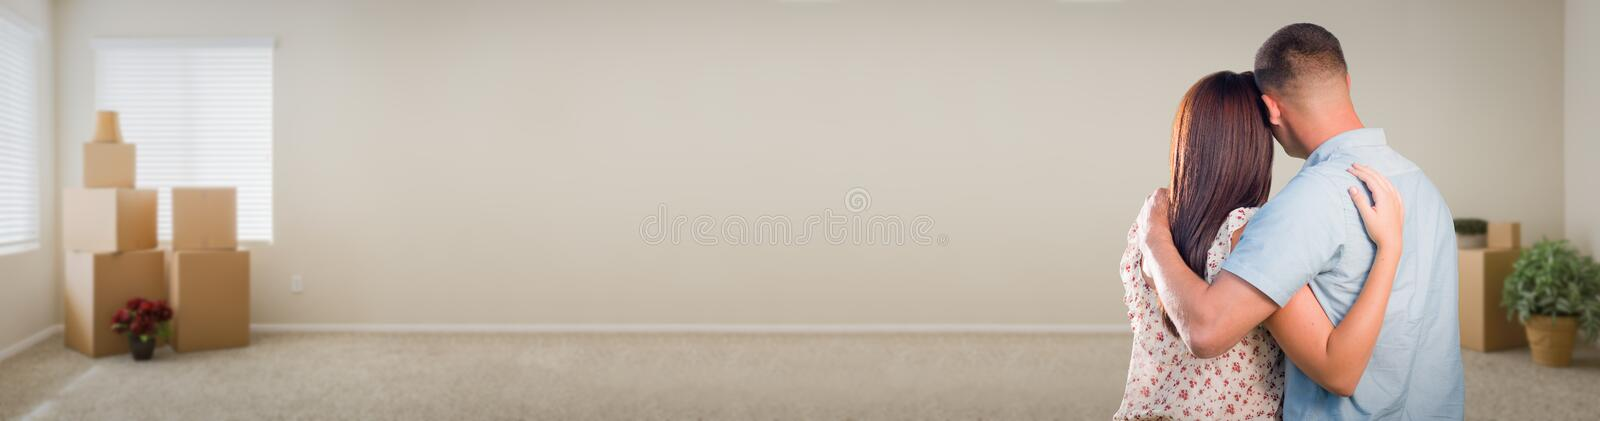 Young Military Couple Looking Inside Room with Boxes Banner. Sweet Young Military Couple Looking Inside Room with Boxes Banner royalty free stock images